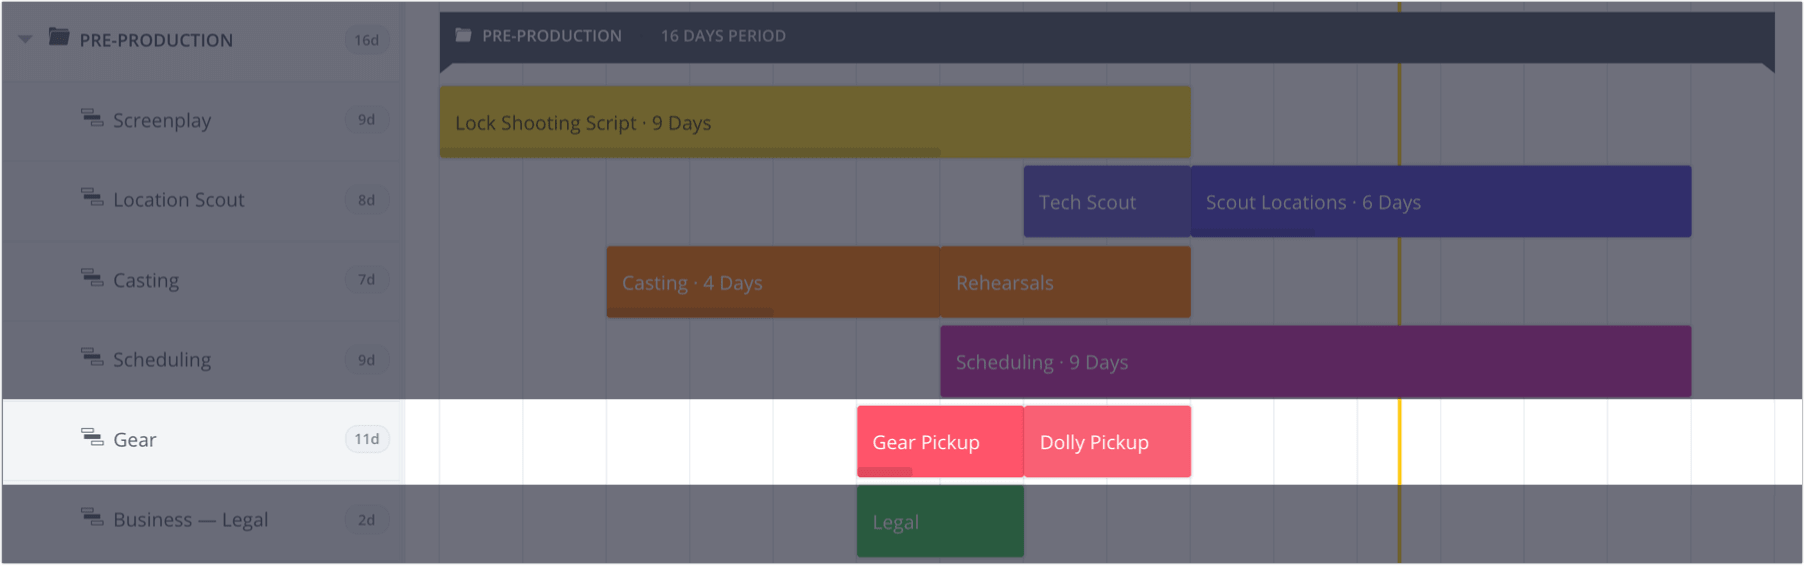 How to Plan a Shoot with a Film & Video Production Calendar - StudioBinder - 13